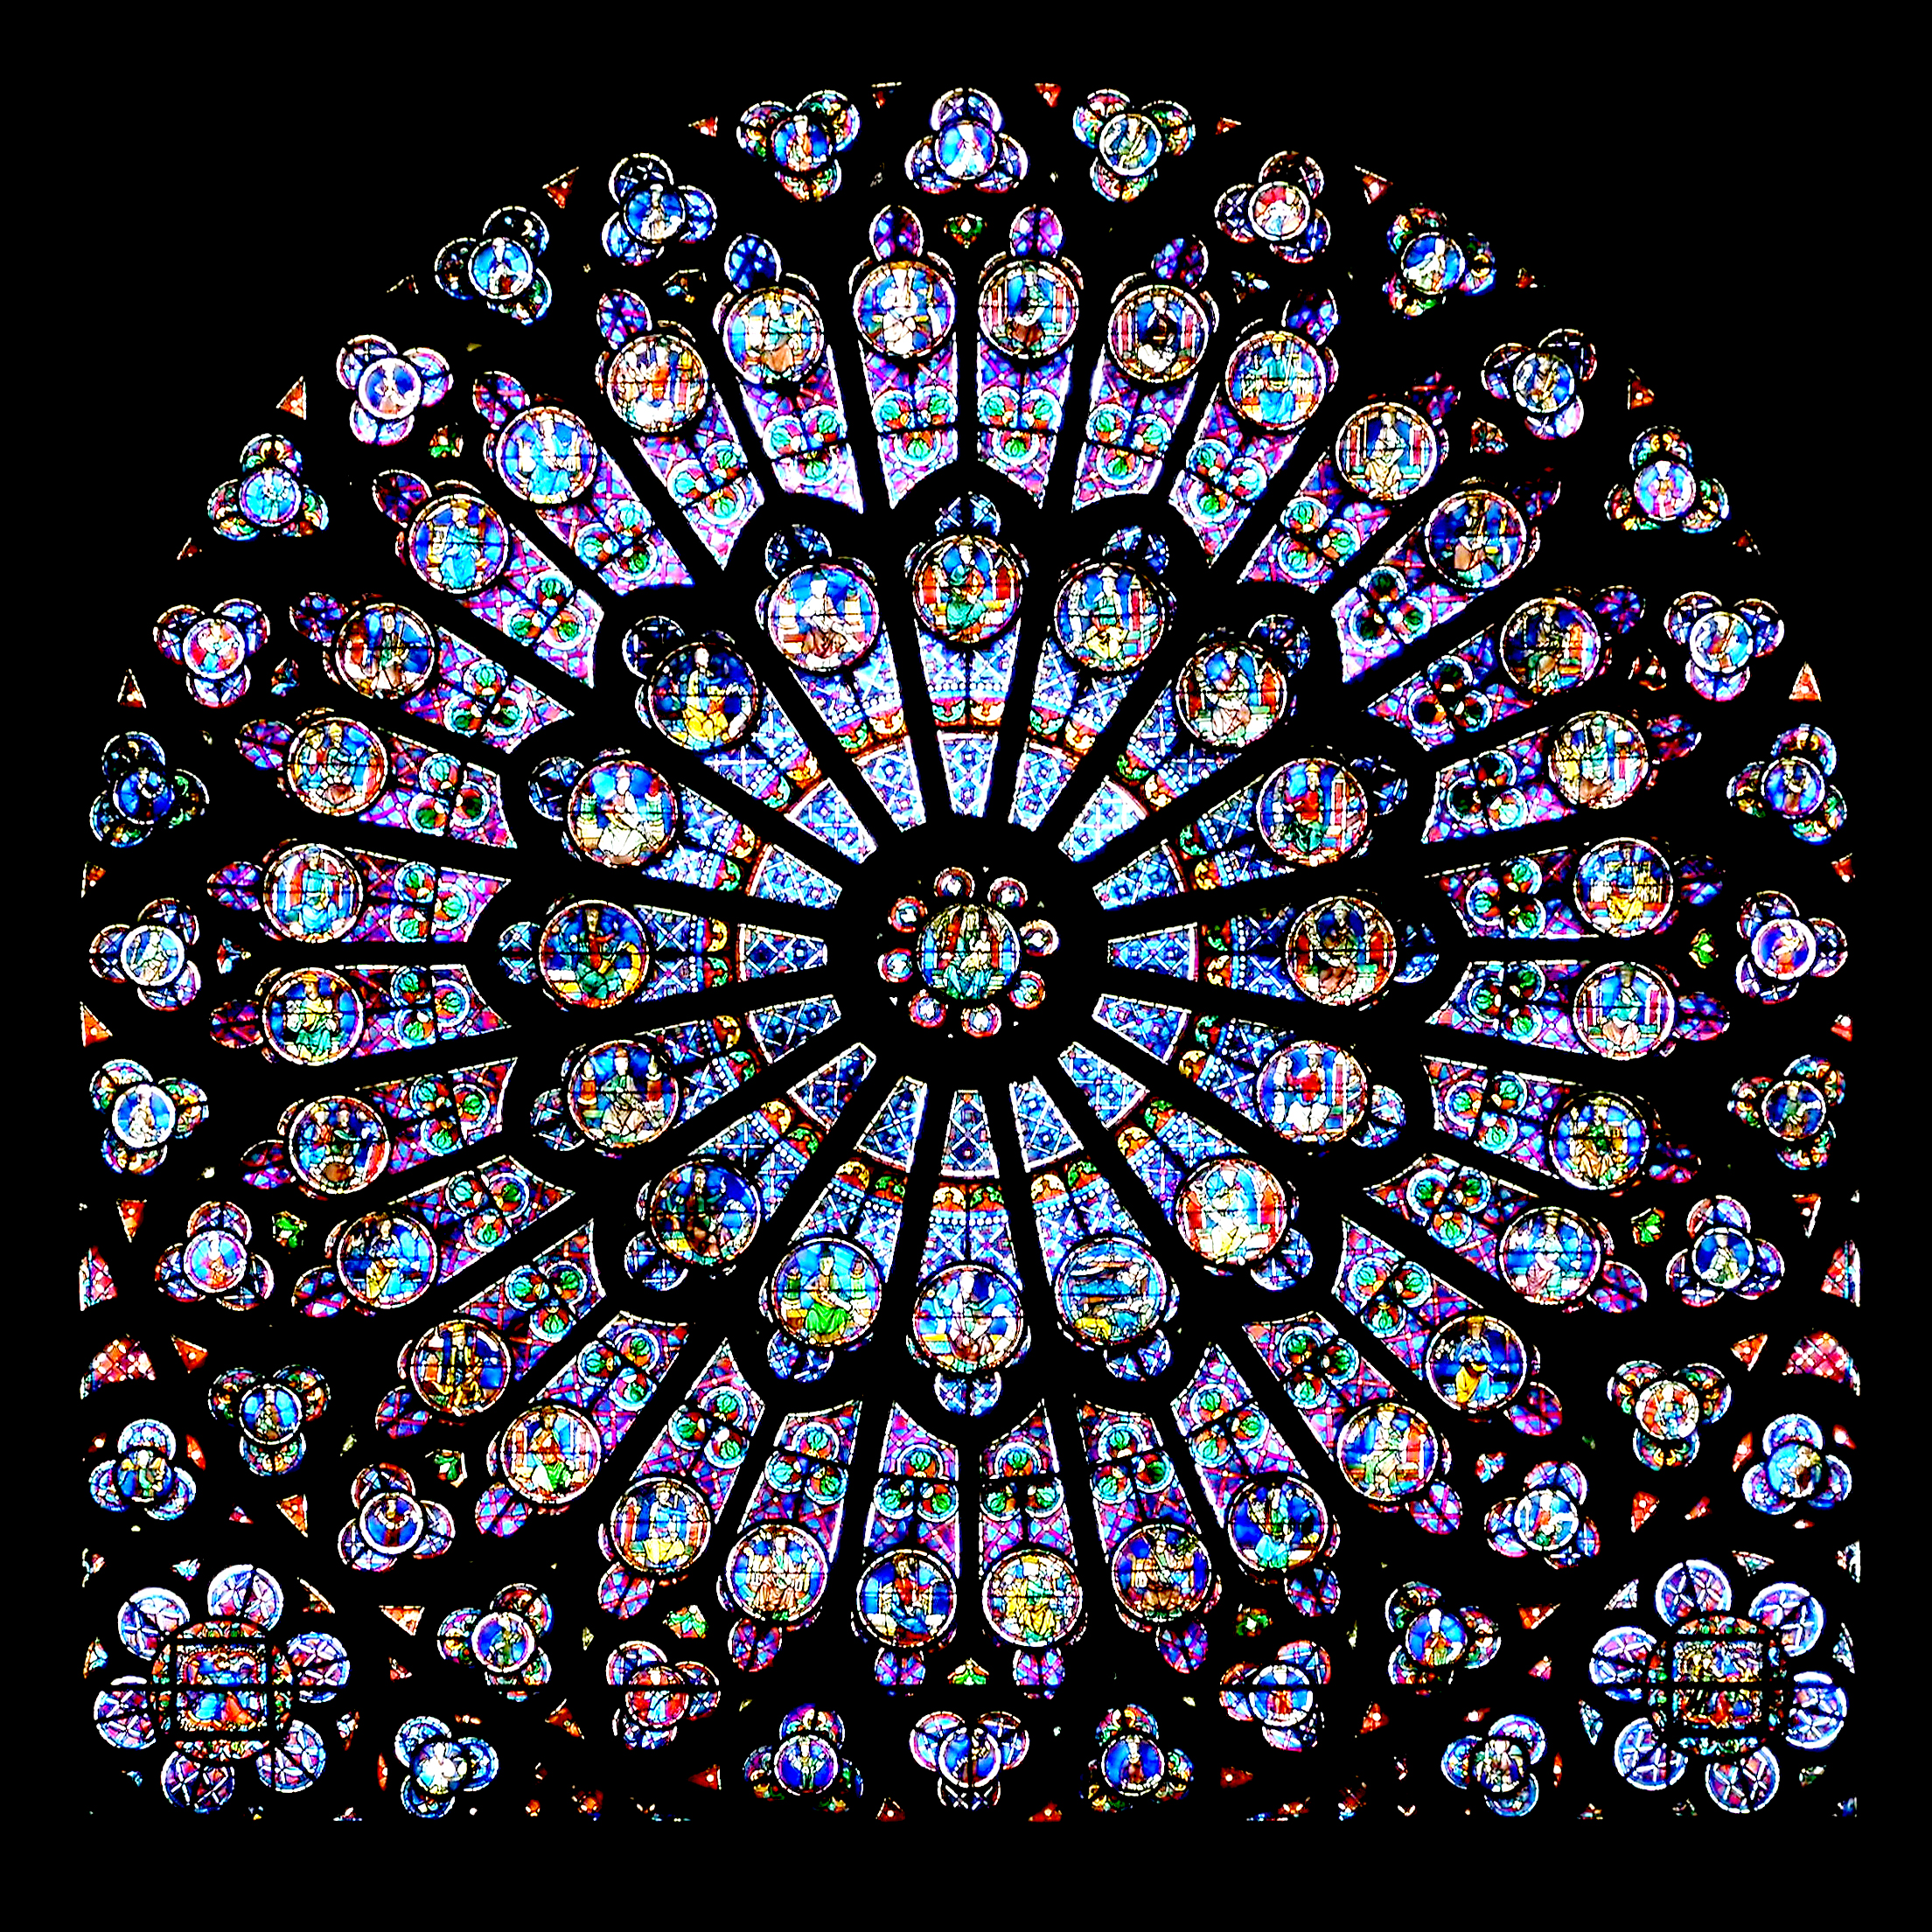 plasmons, shiny metals, and stained glass | letstalkaboutscience